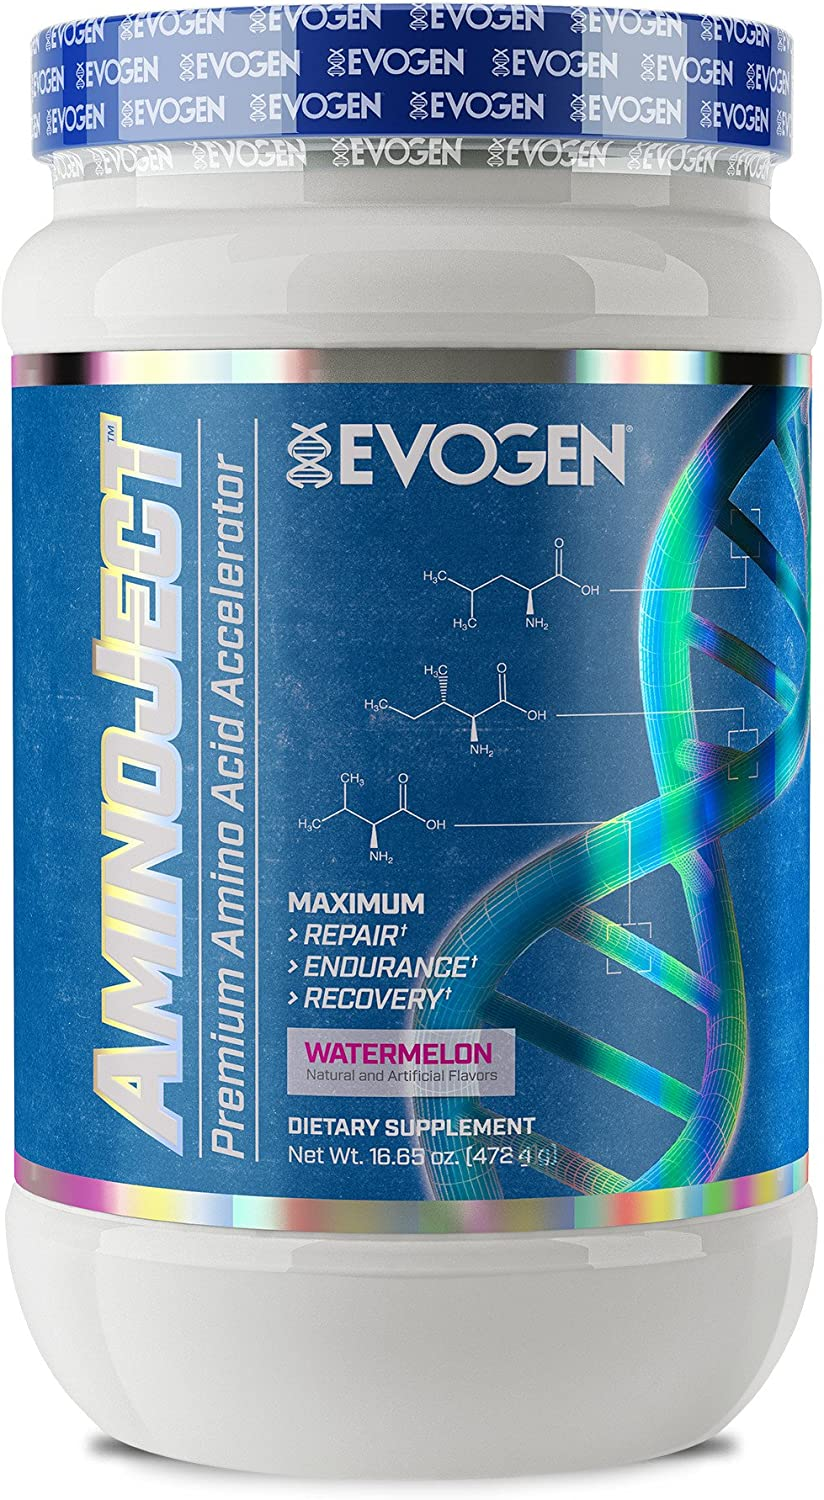 Evogen AminoJect Vegan Fermented Plant Based BCAA, Glutamine, Citrulline Powder Watermelon 30 Servings